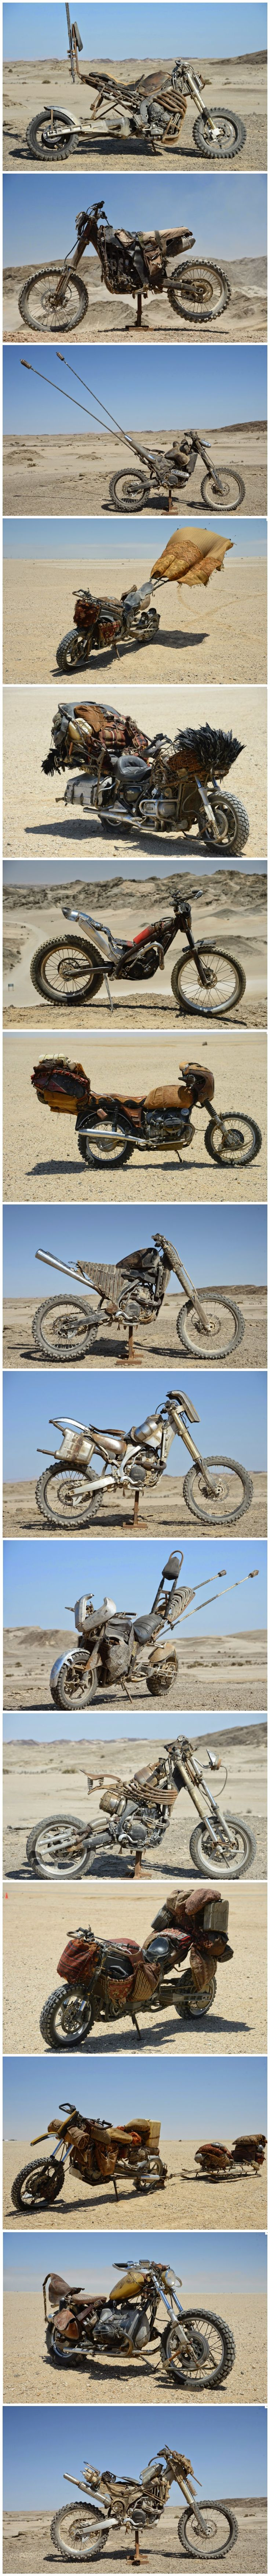 Mad Max Fury Road motorcycle